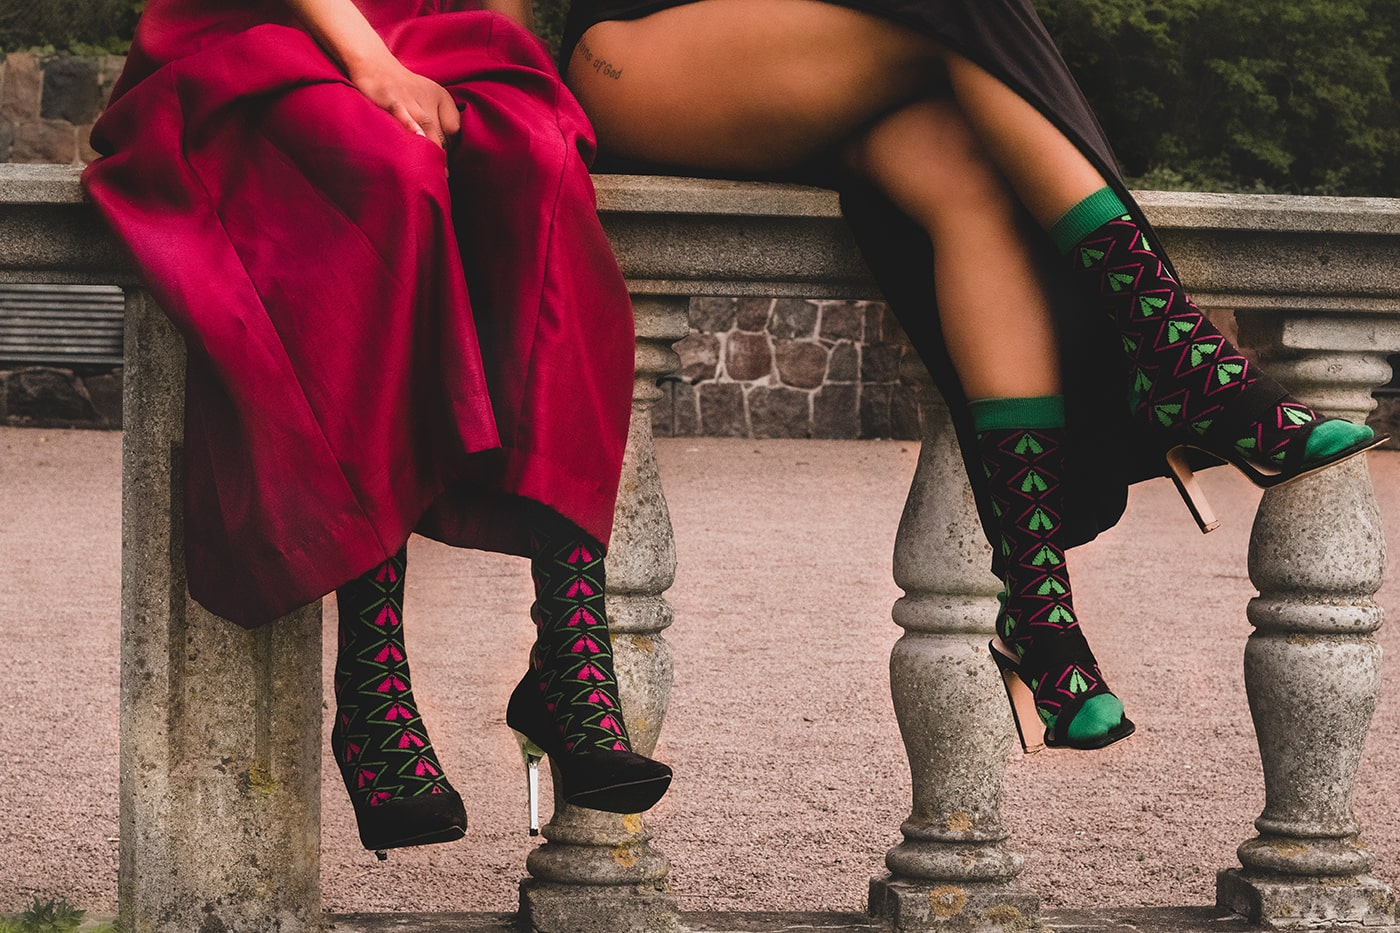 two women in dresses and black african bamboo dress socks in heels sitting on stone